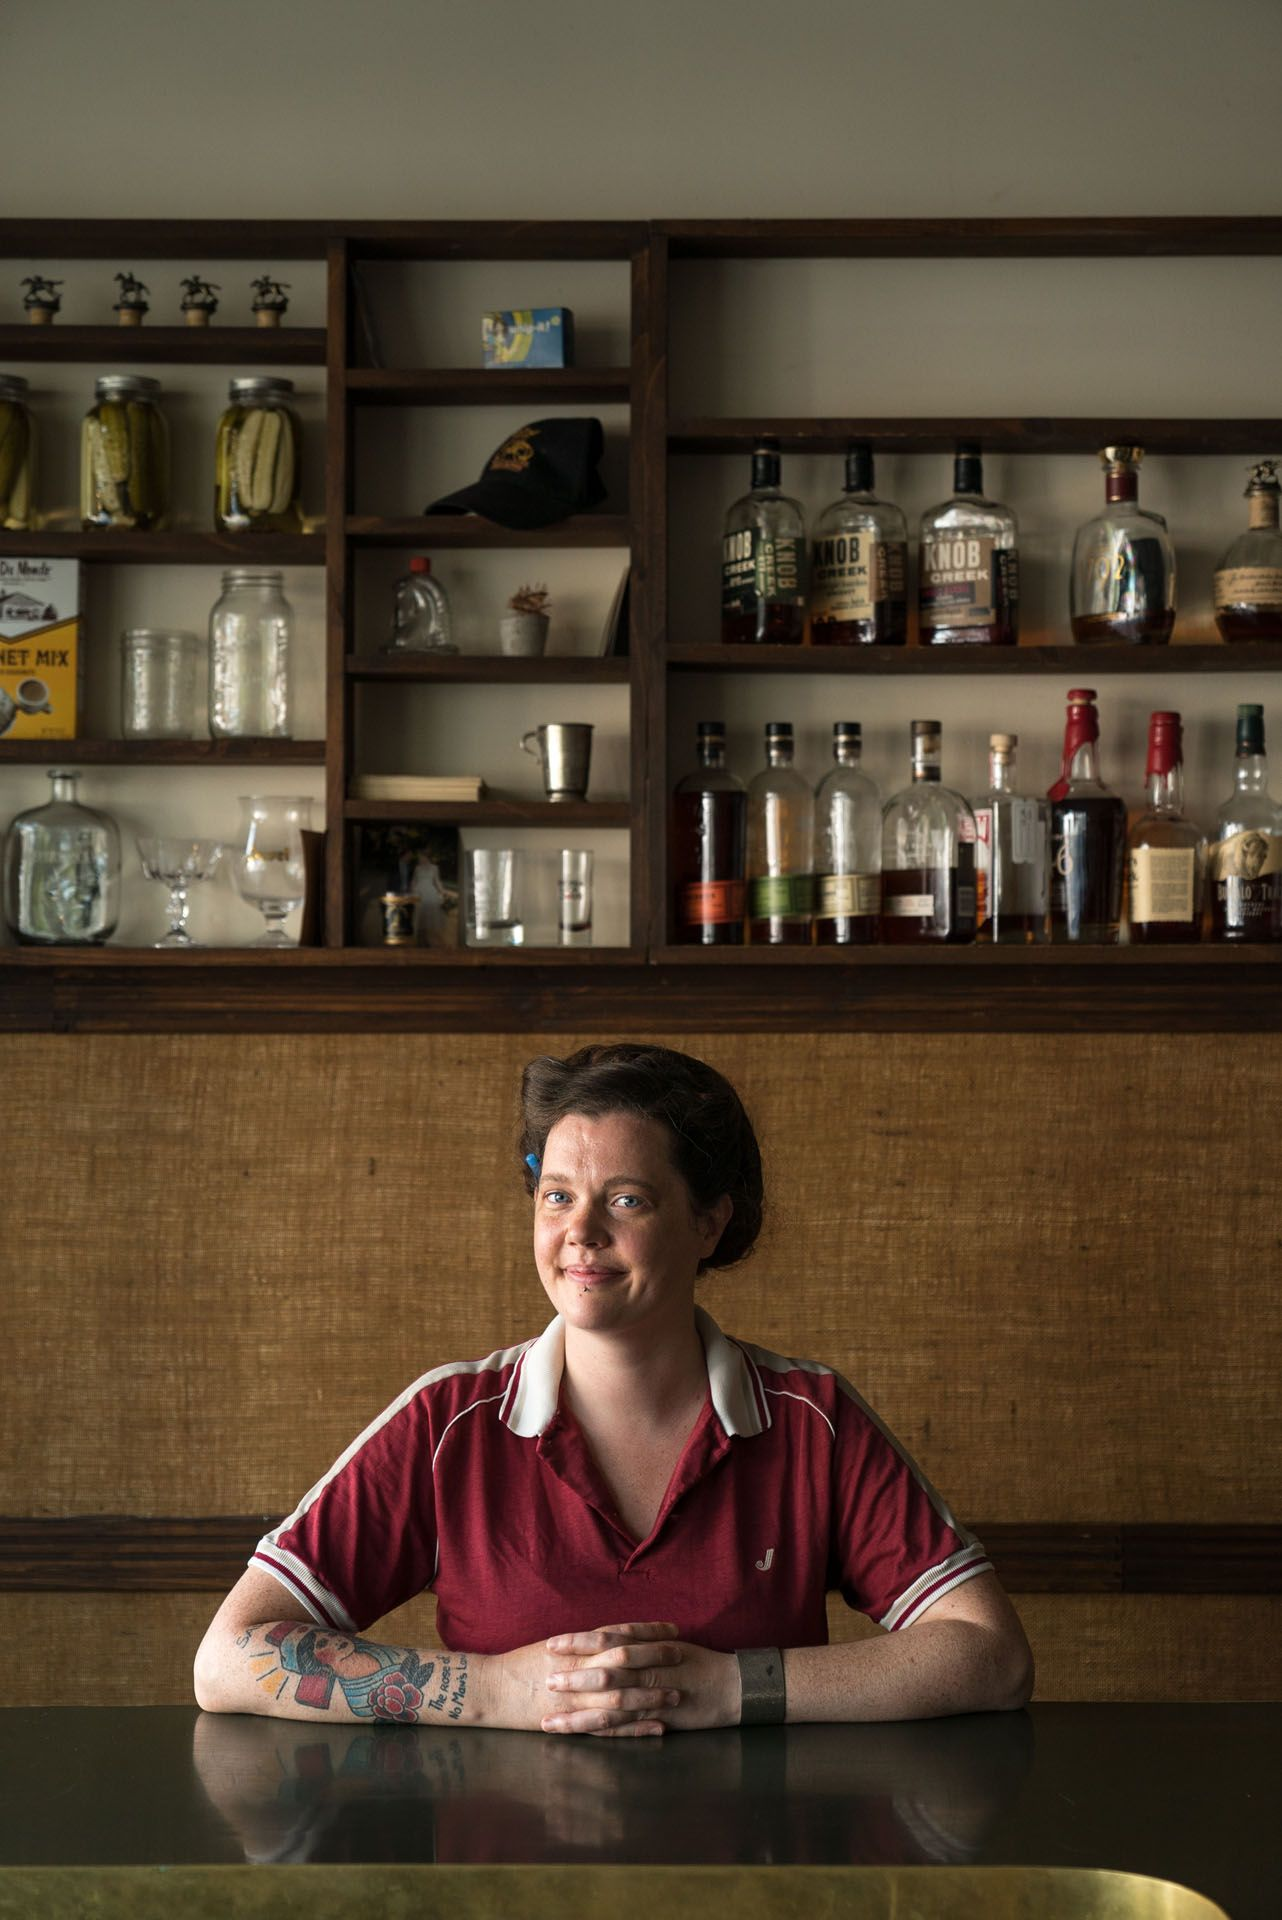 female bar owner sitting at table in front of wall with bottles by Bruno Florin for mile ex mille vie